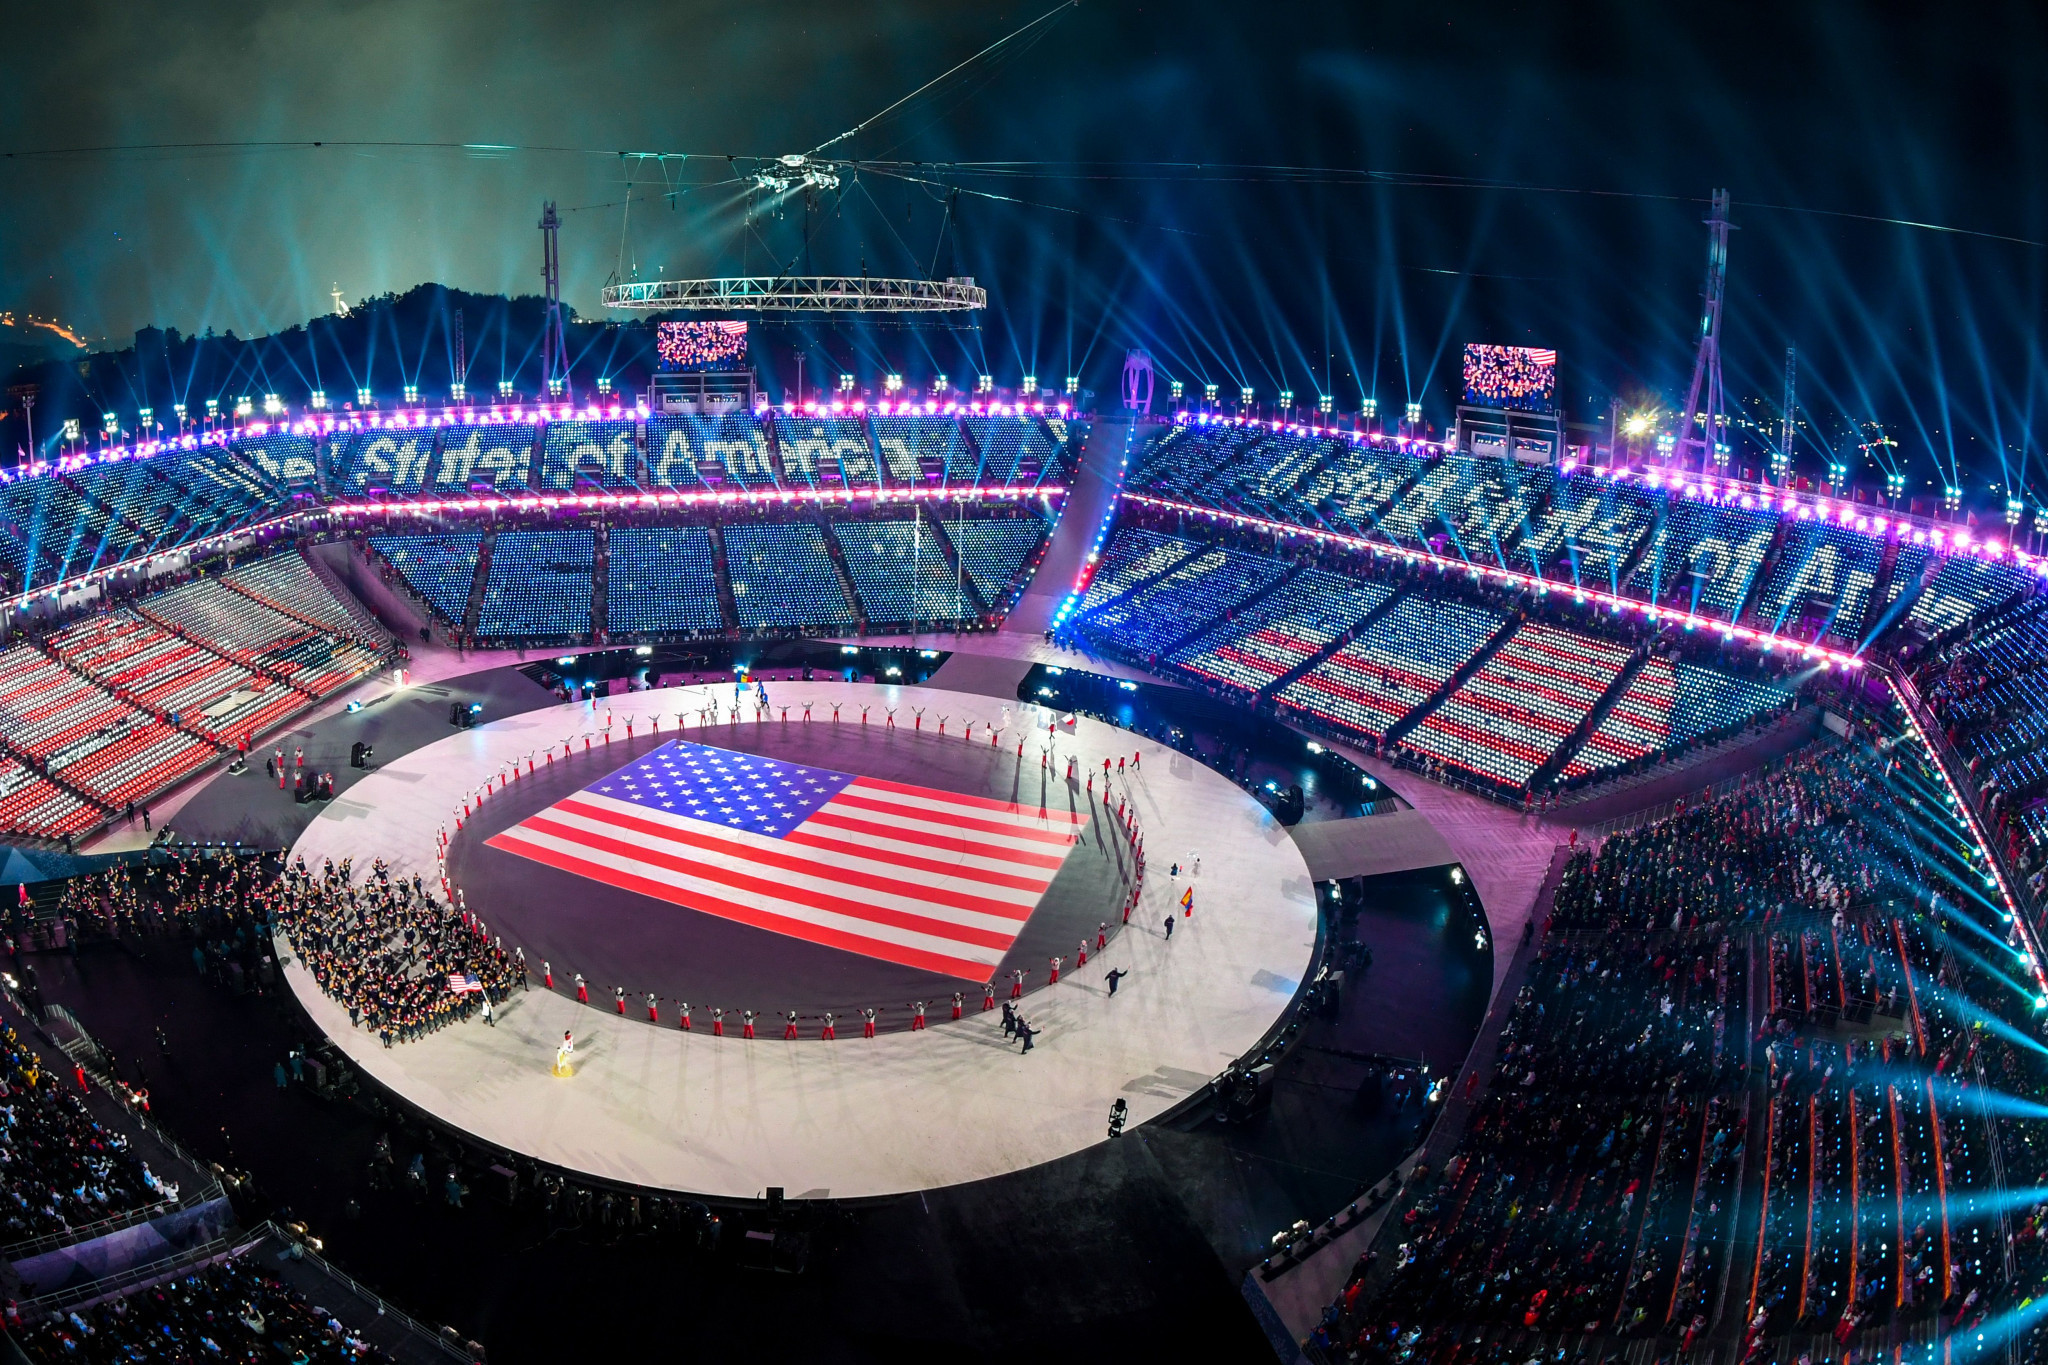 The United States Olympic and Paralympic Committee has said it will not sanction athletes for demonstrating at the Olympics and Paralympics ©Getty Images